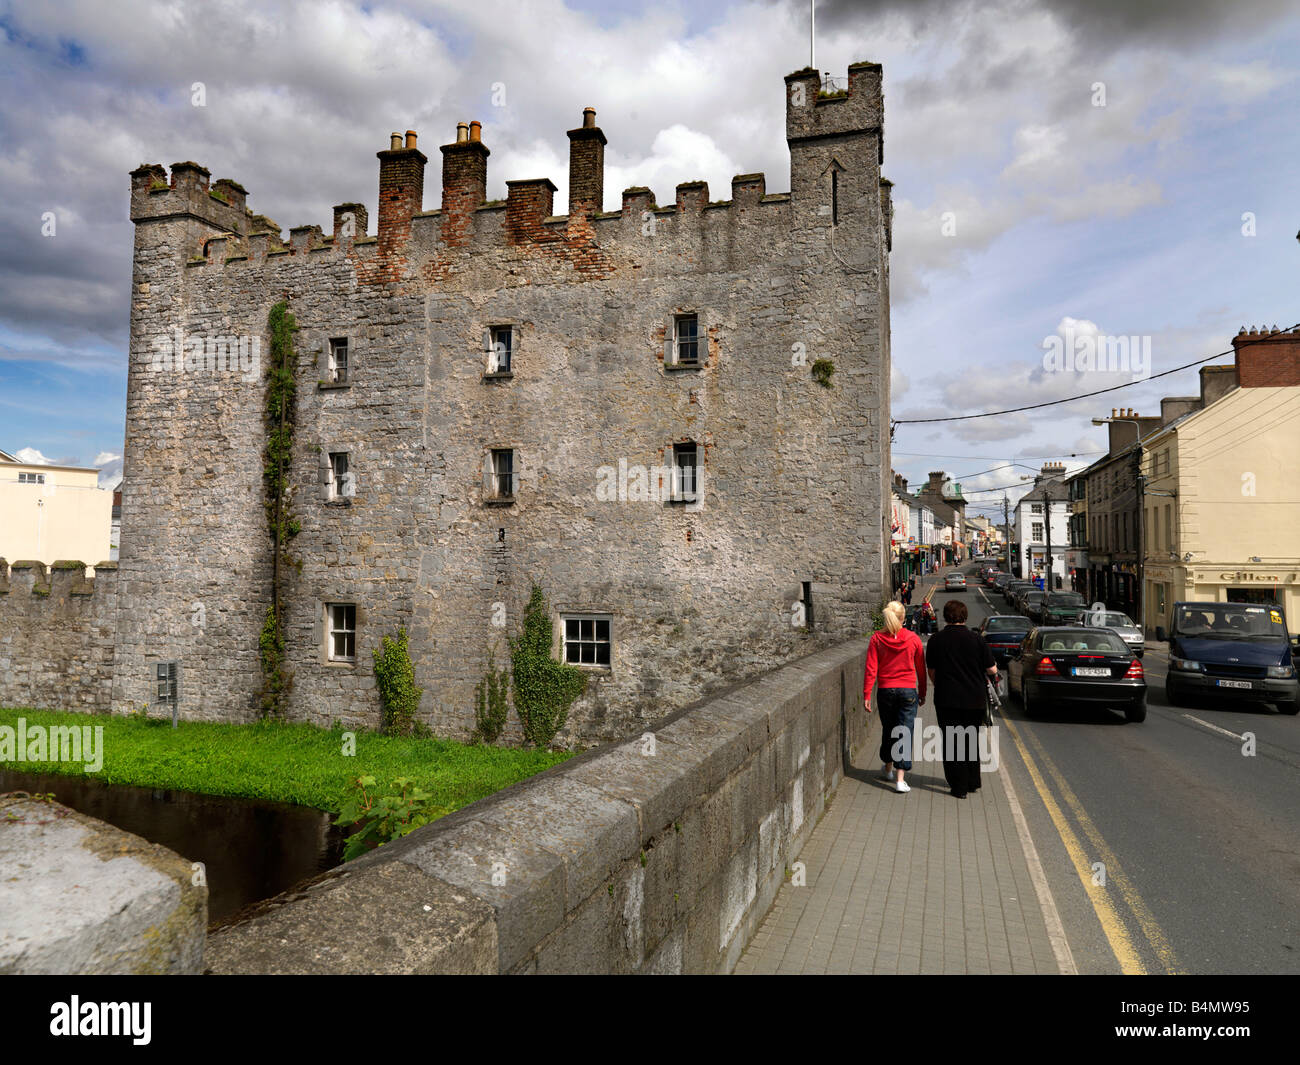 15th century Whites Castle in Athy on the market for 450,000